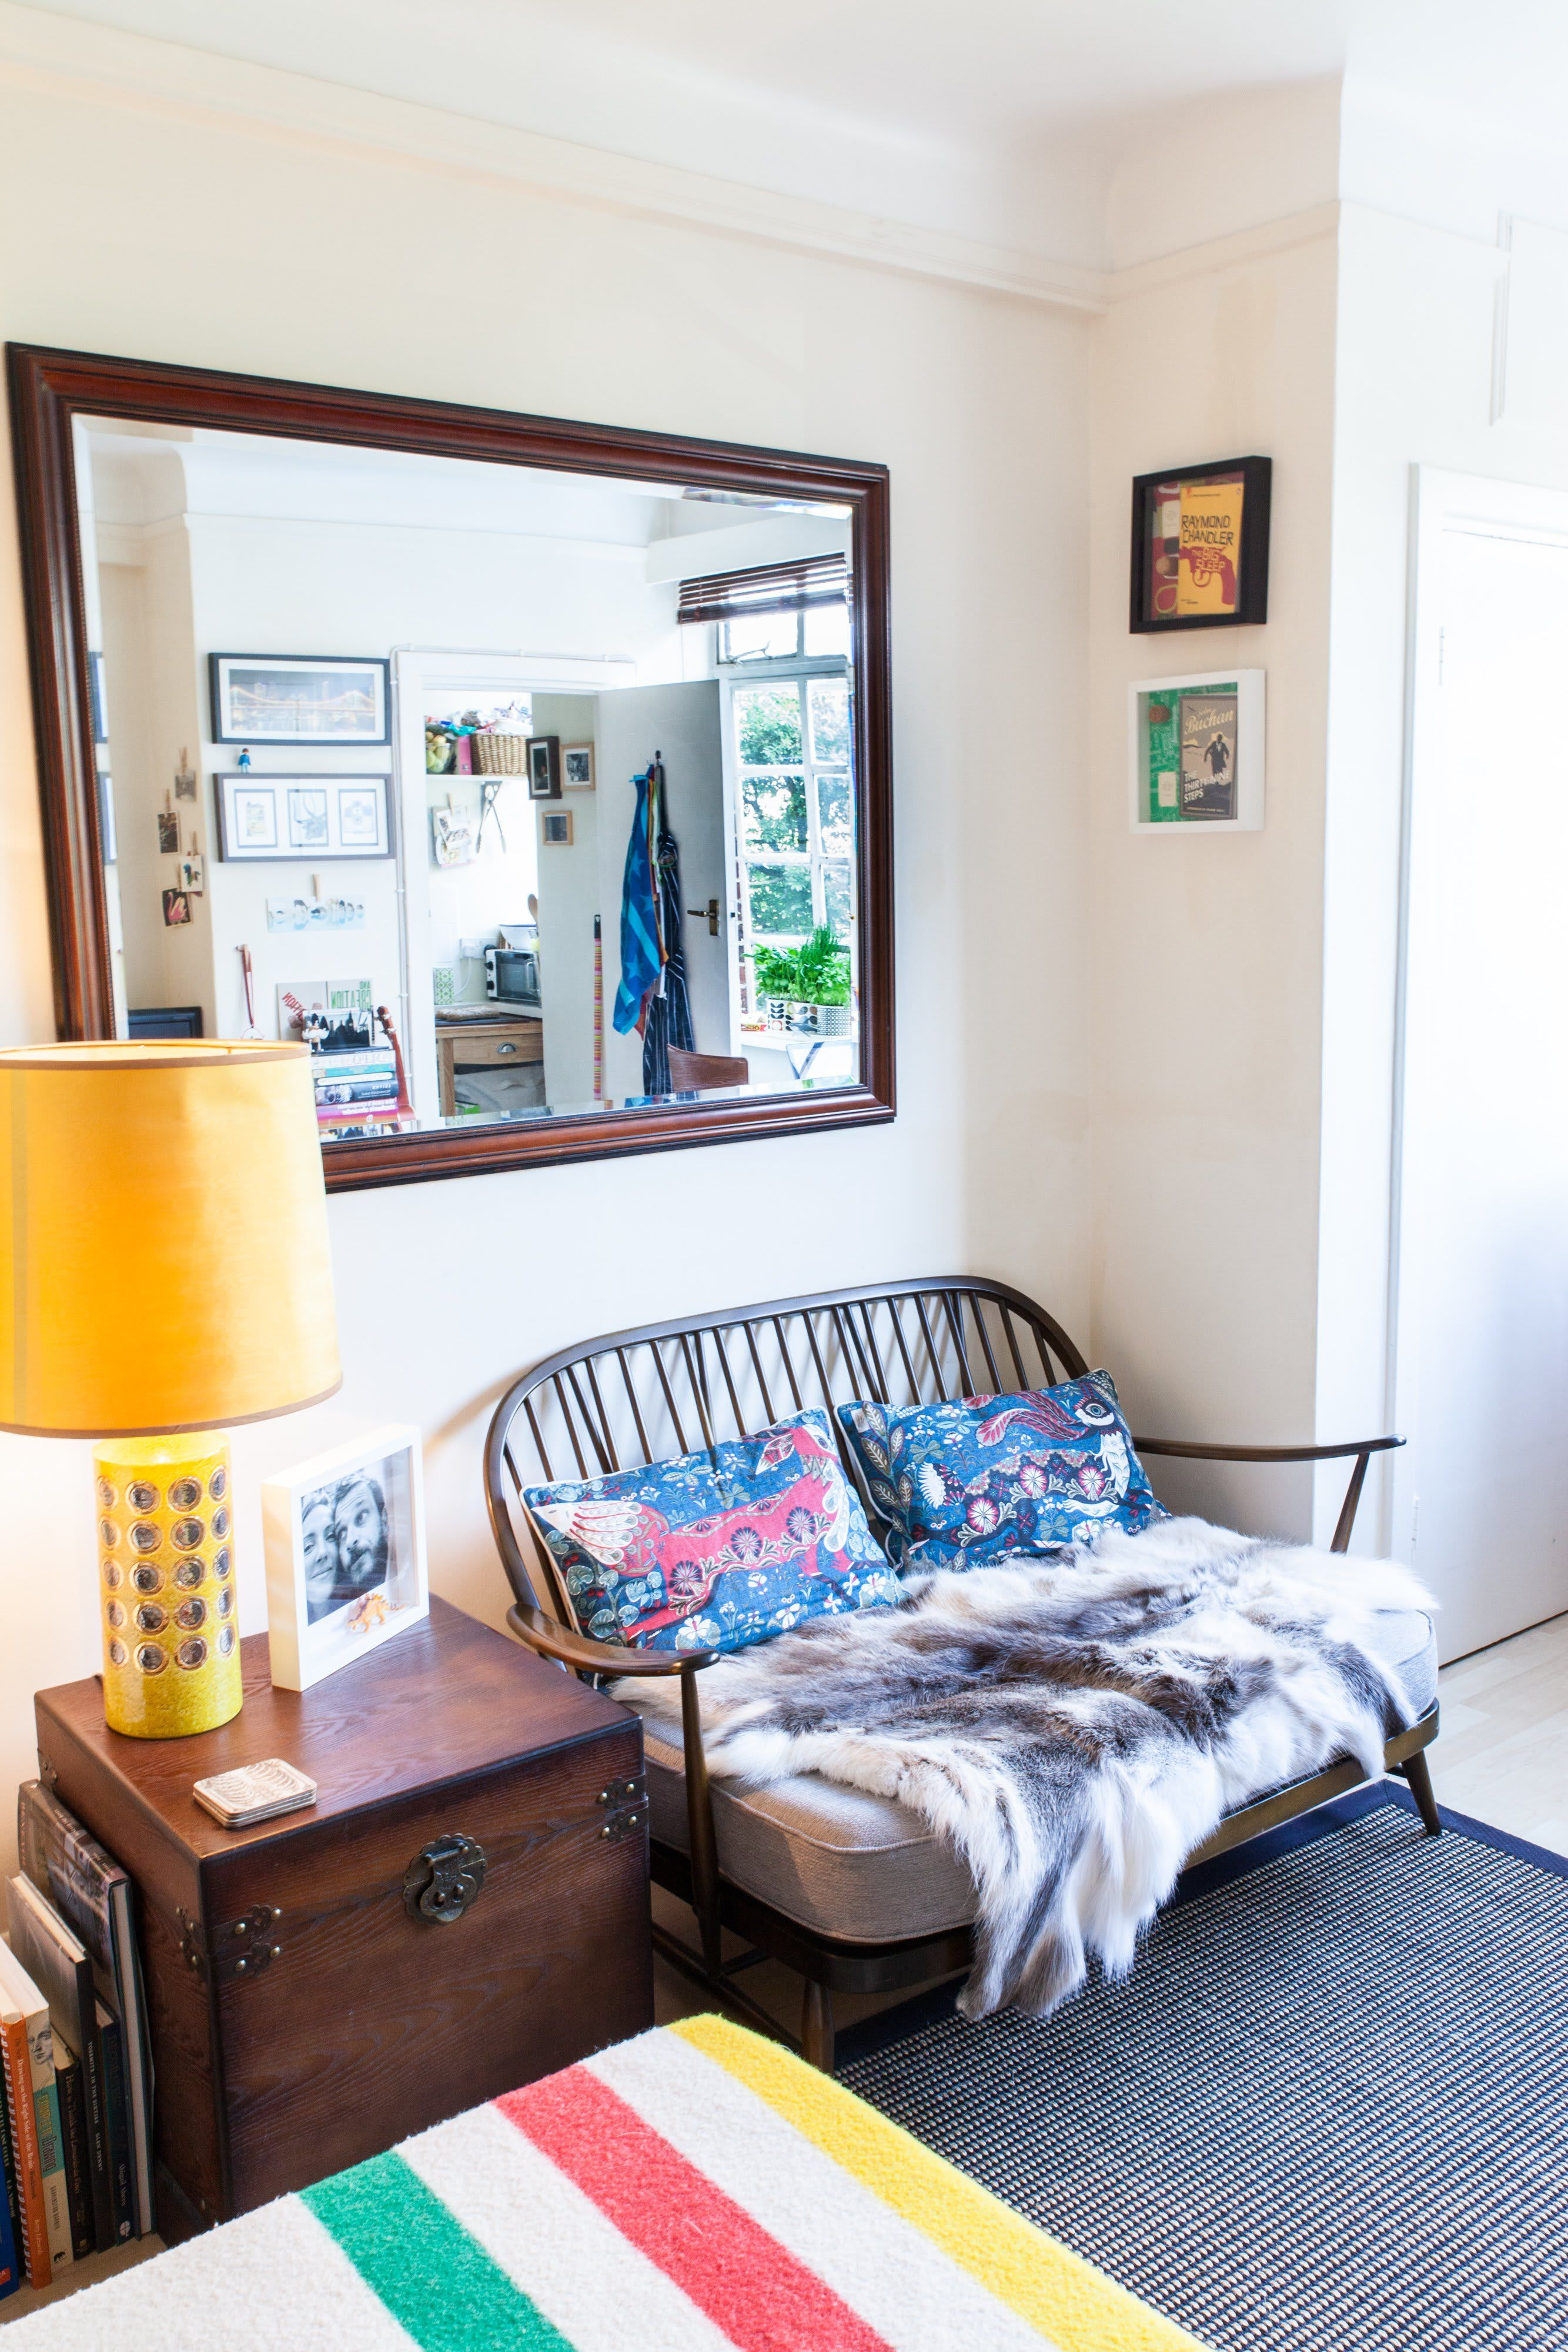 Small Space Solutions Living Room: A Tiny 270-Square-Foot Shared London Studio